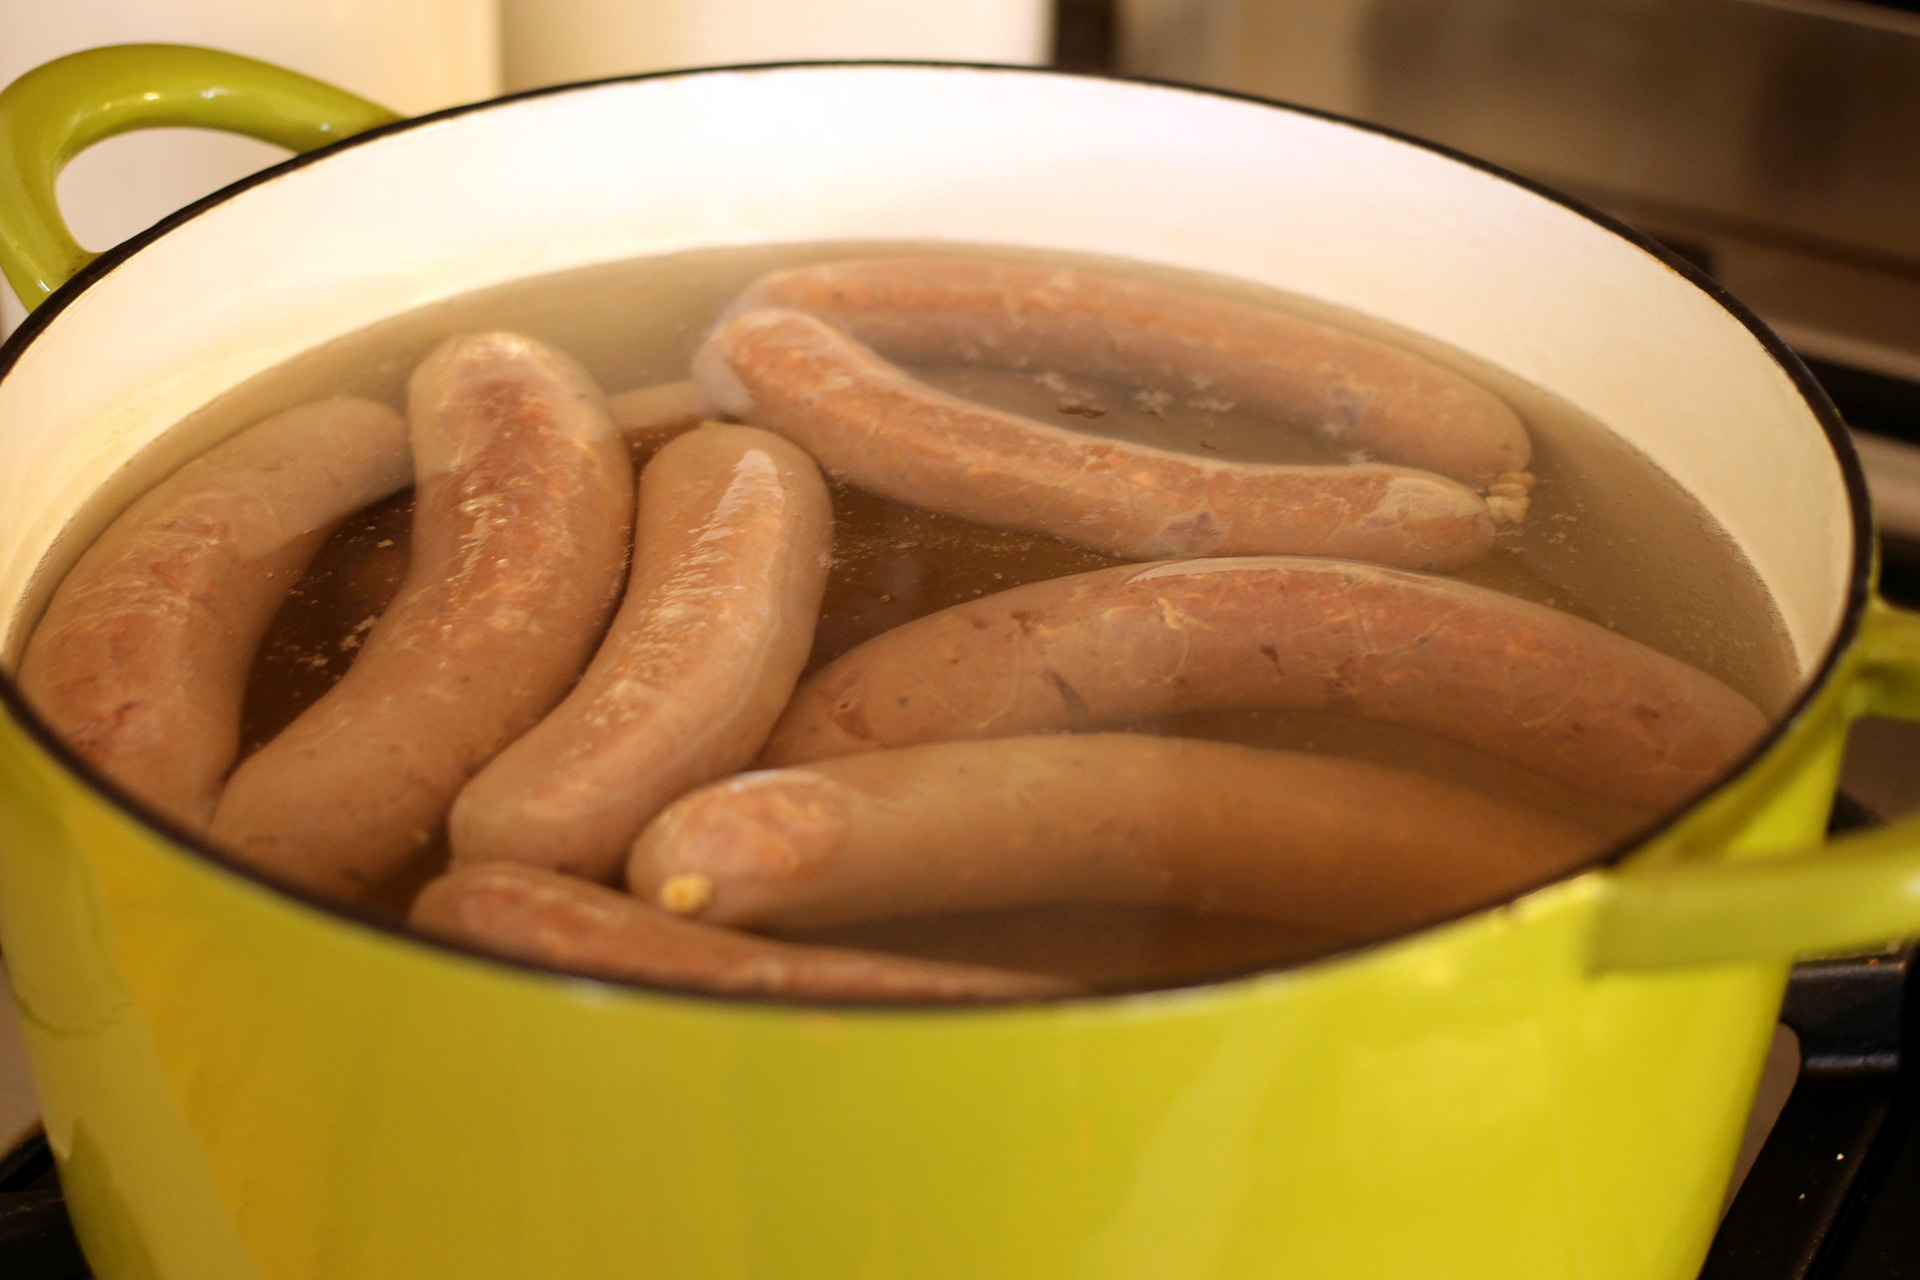 Cooking the sausages gently in water will keep the skins from getting wrinkled when you finish them on the grill or stovetop.